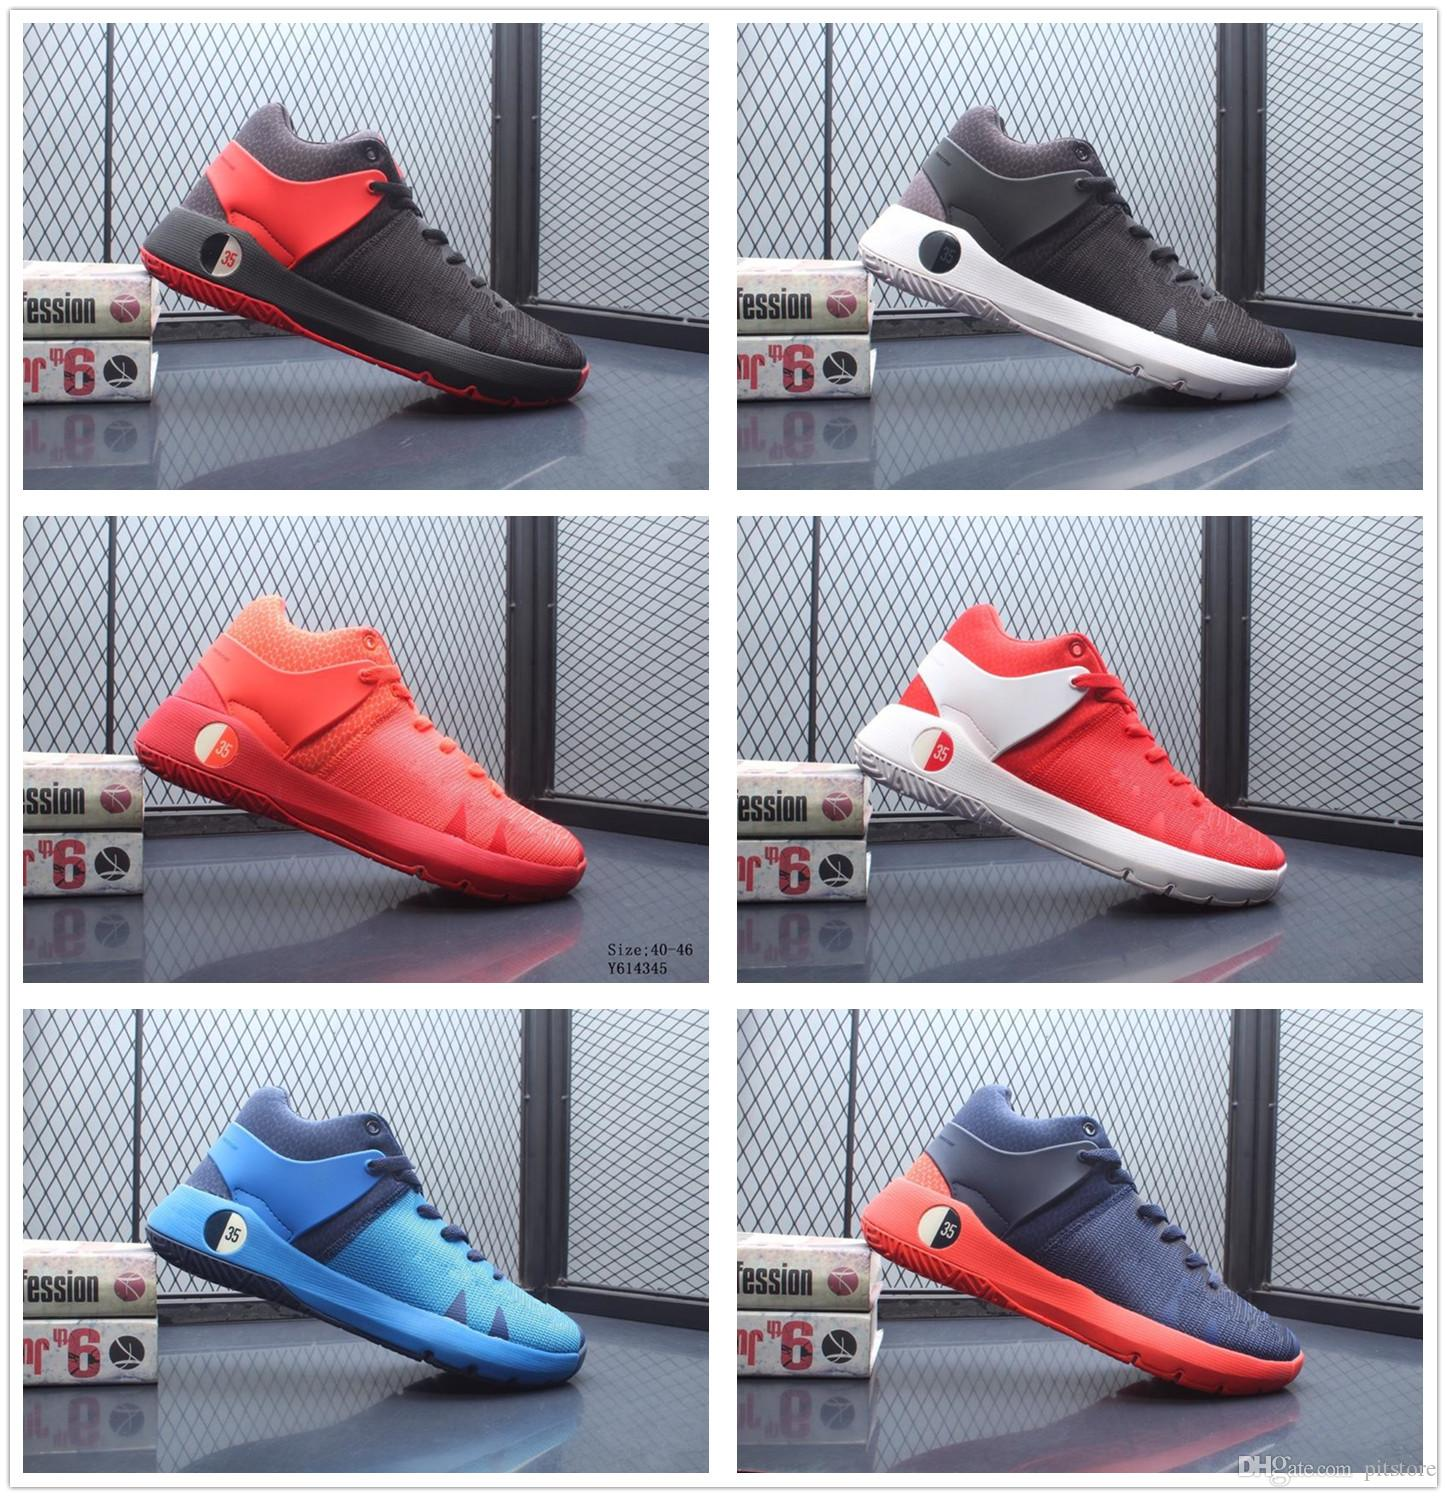 c181918761dd 2019 2019 New MEN Shoes KD Trey 5 IV Shoes KD 5 TREY VI EP Kd 11 EURO 40 46  With Box From Pitstore